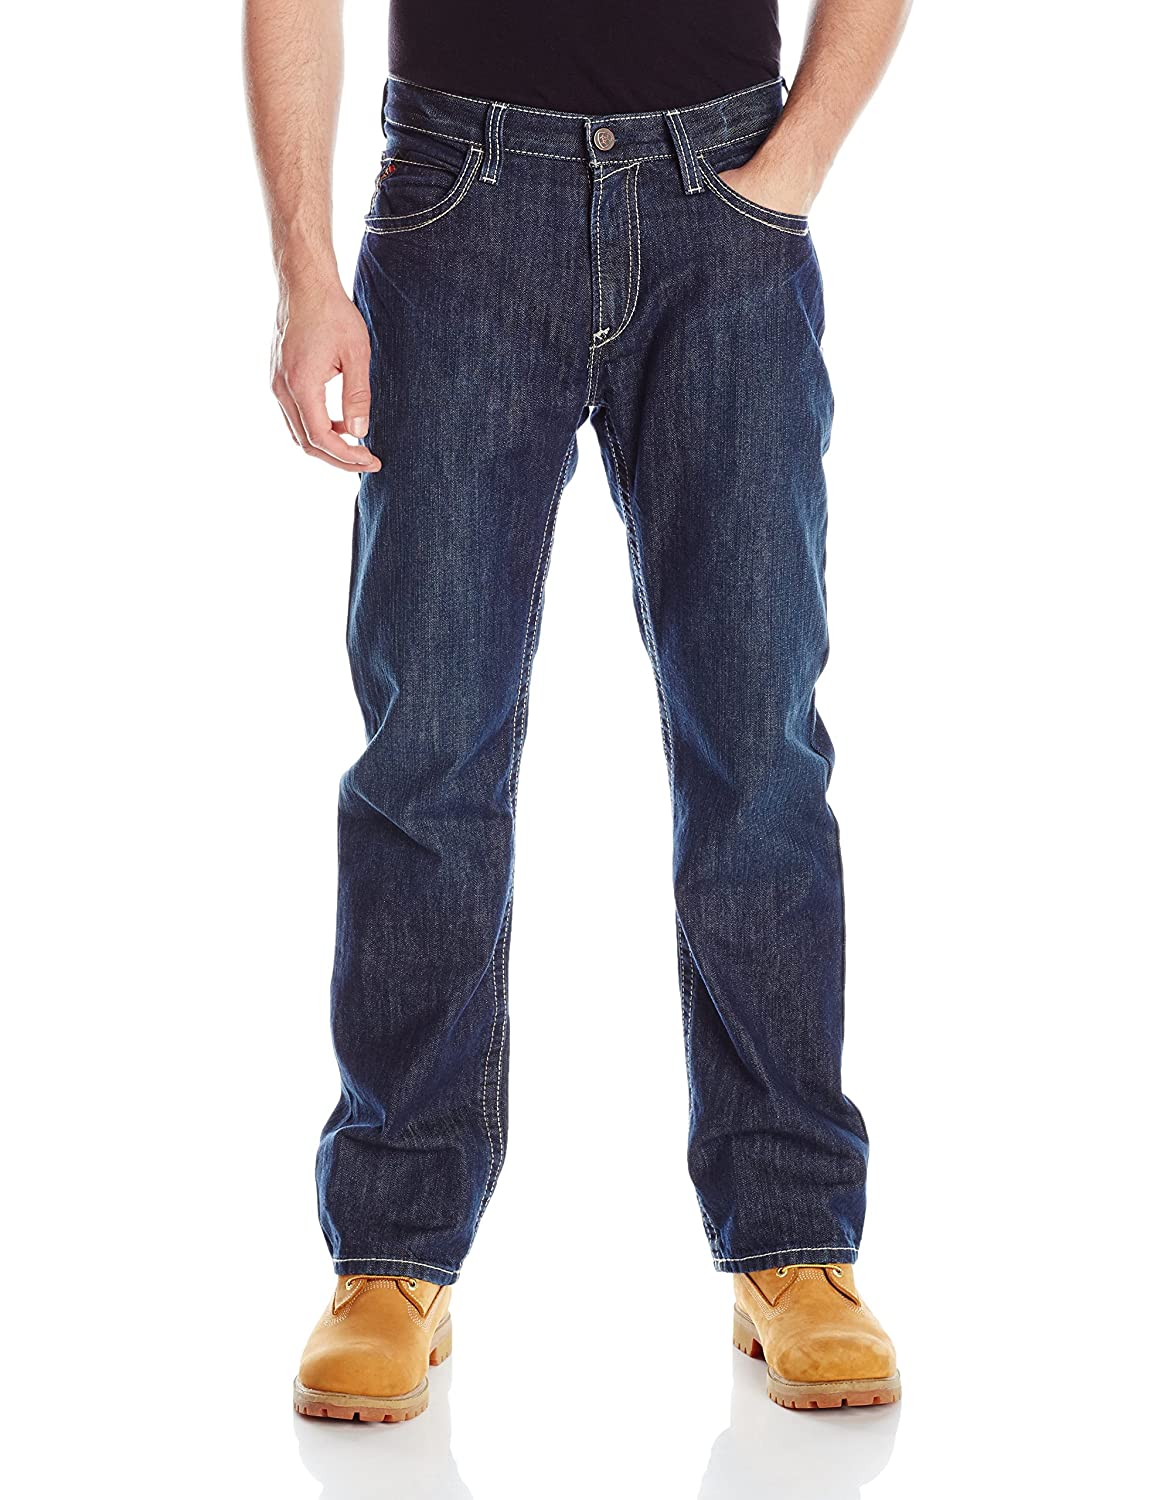 Ariat PANTS メンズ B00WI45416 31W x 32L|Boundary Shale Boundary Shale 31W x 32L